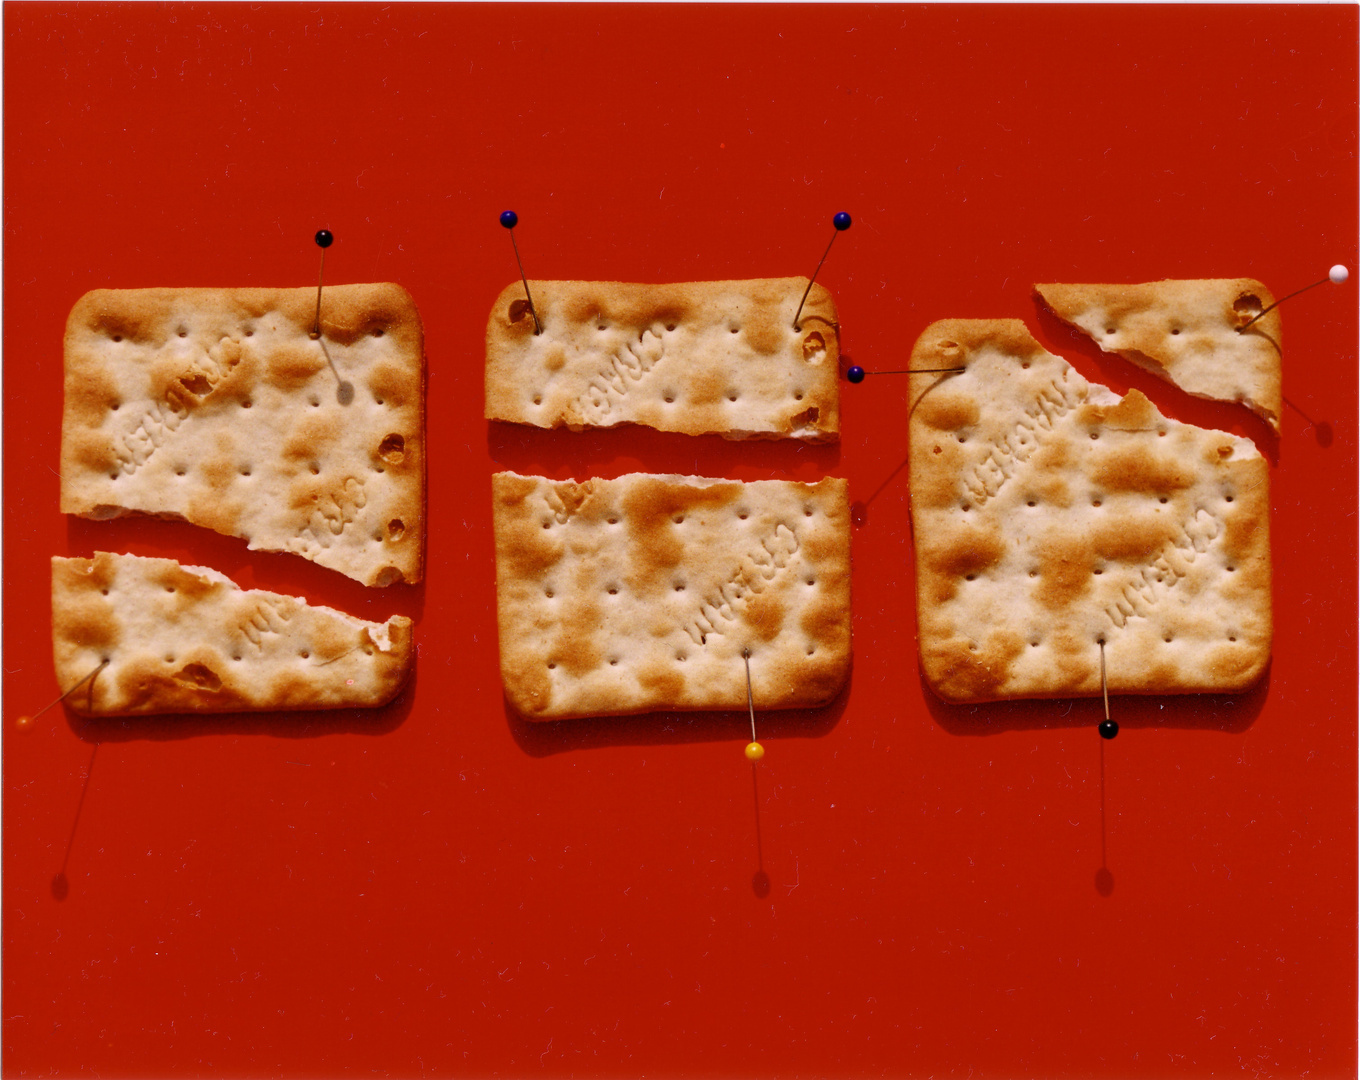 pinned crackers 2001.jpg